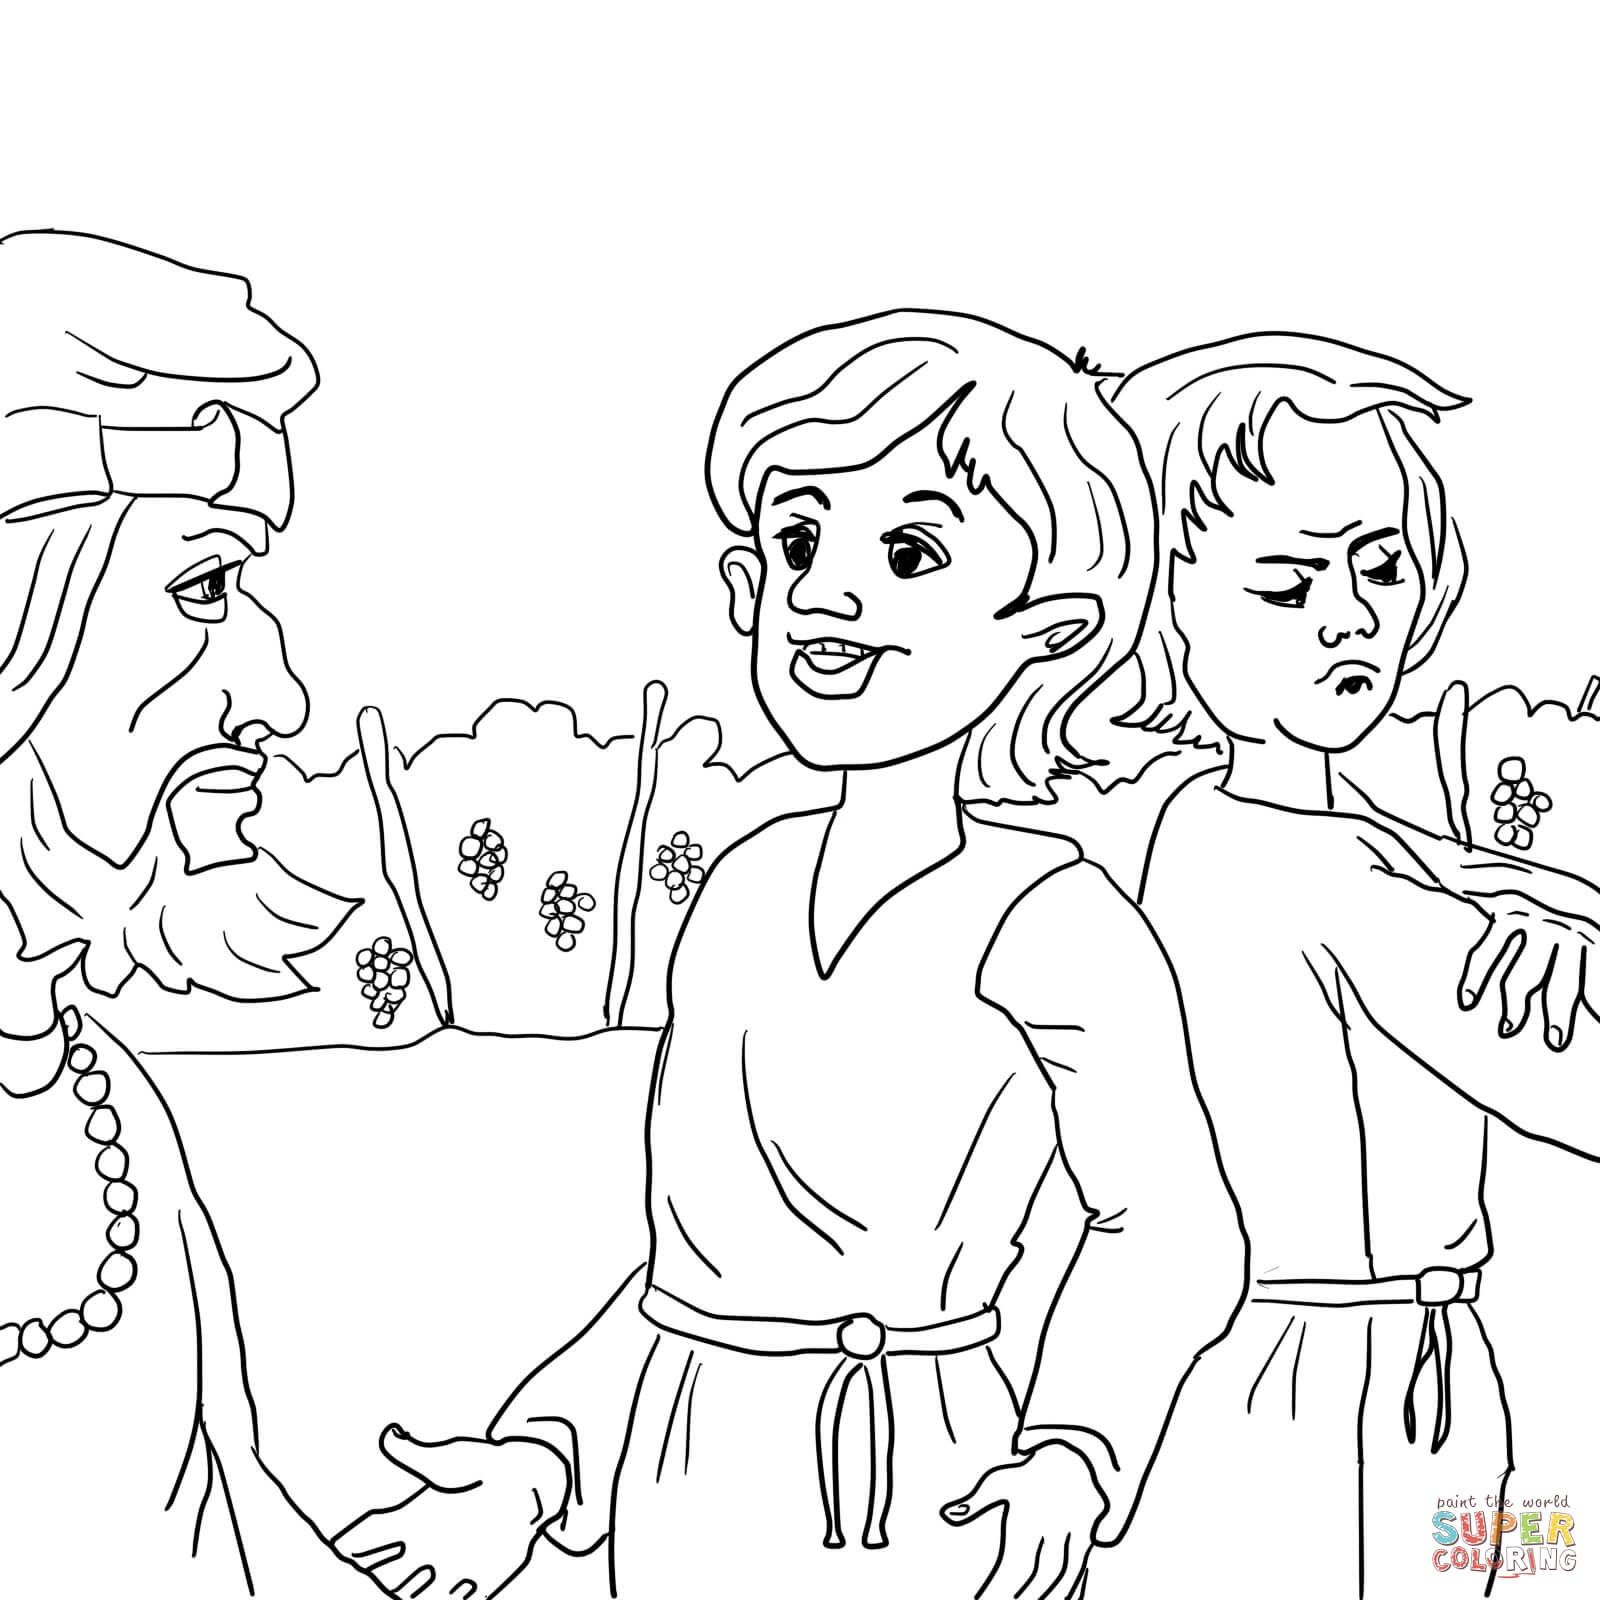 Prodigal Son Coloring Pages Preschool Coloring Home